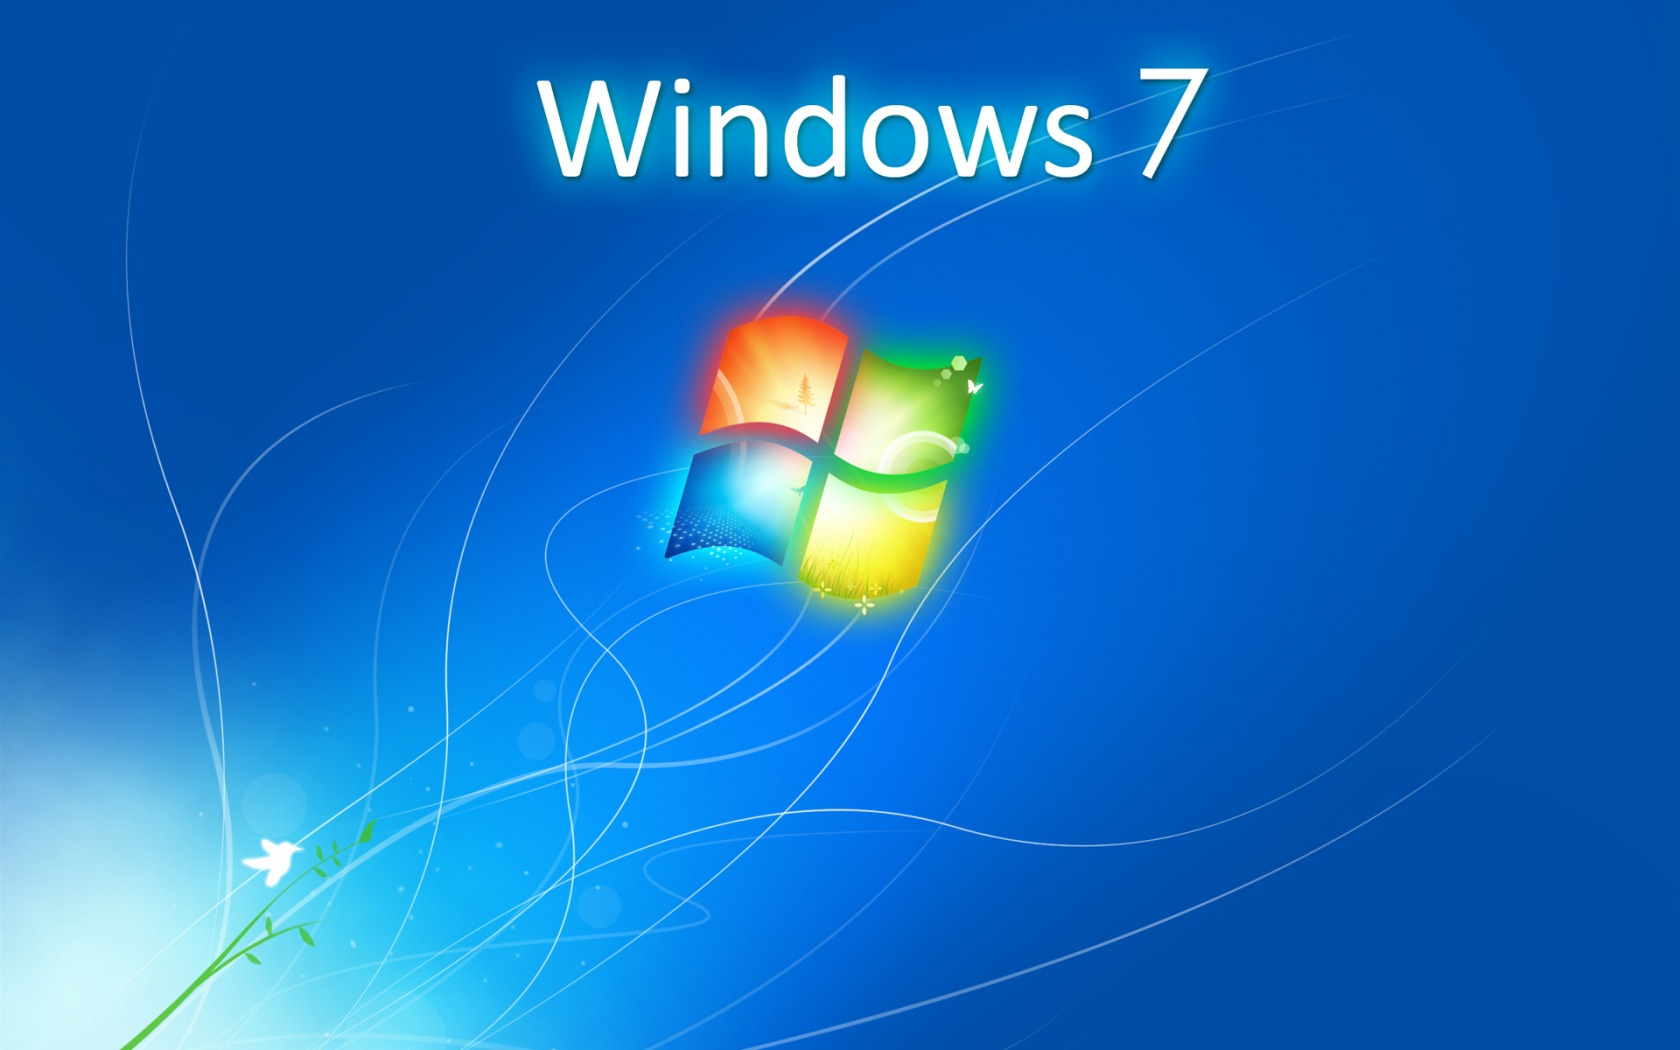 New Windows 7 Wallpaper Windows Seven Puters Wallpapers